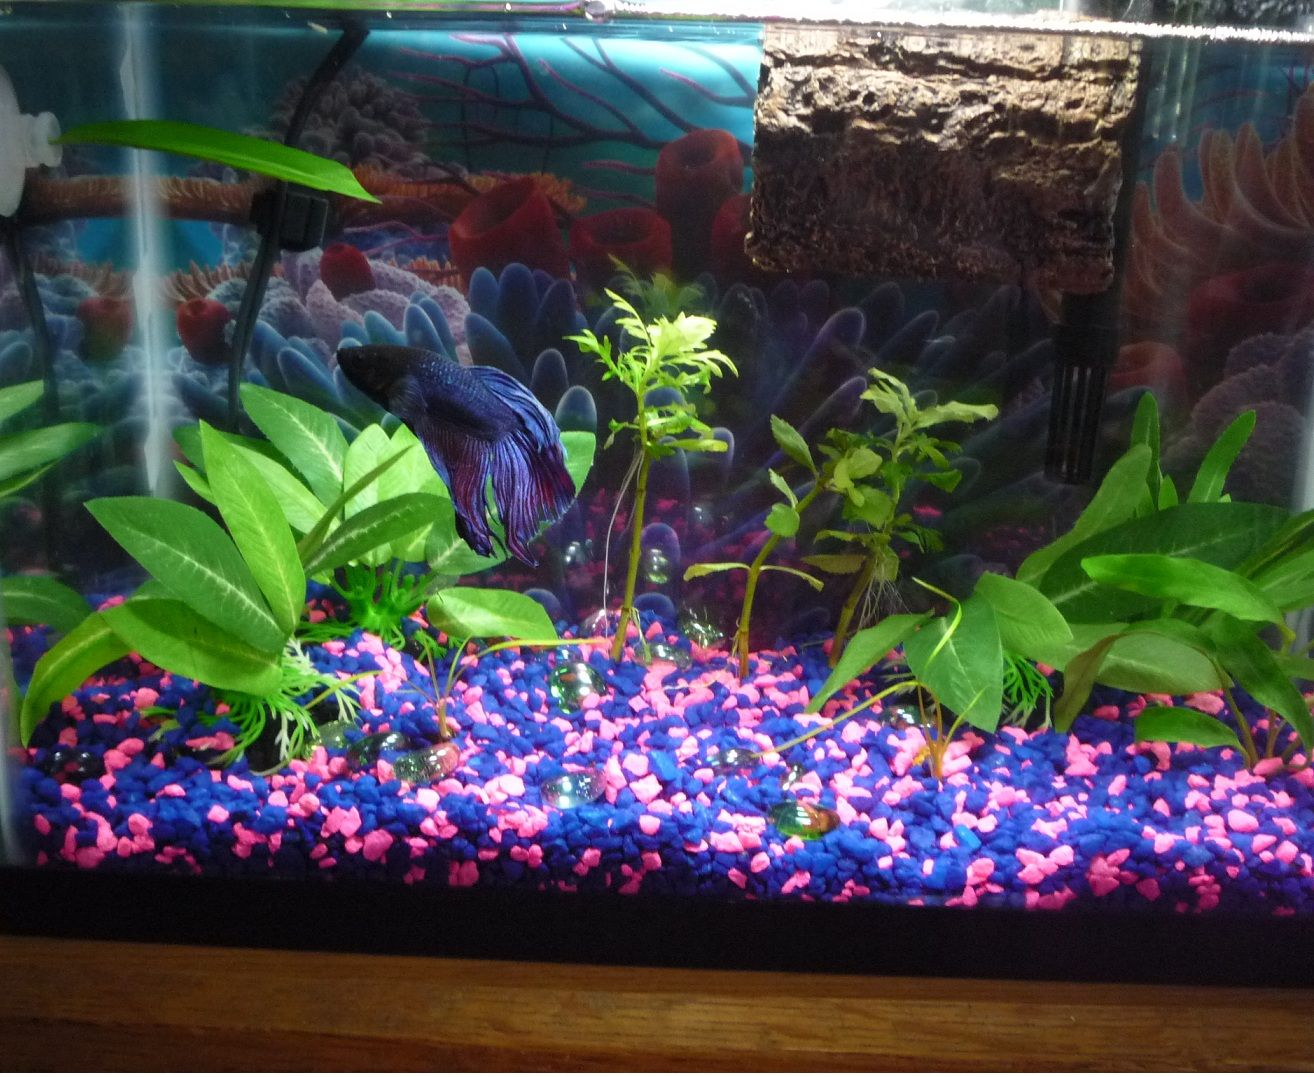 Betta Fish Bowl Decorations Interior Home Accessories  Aquarium  Pinterest  Aquariums And